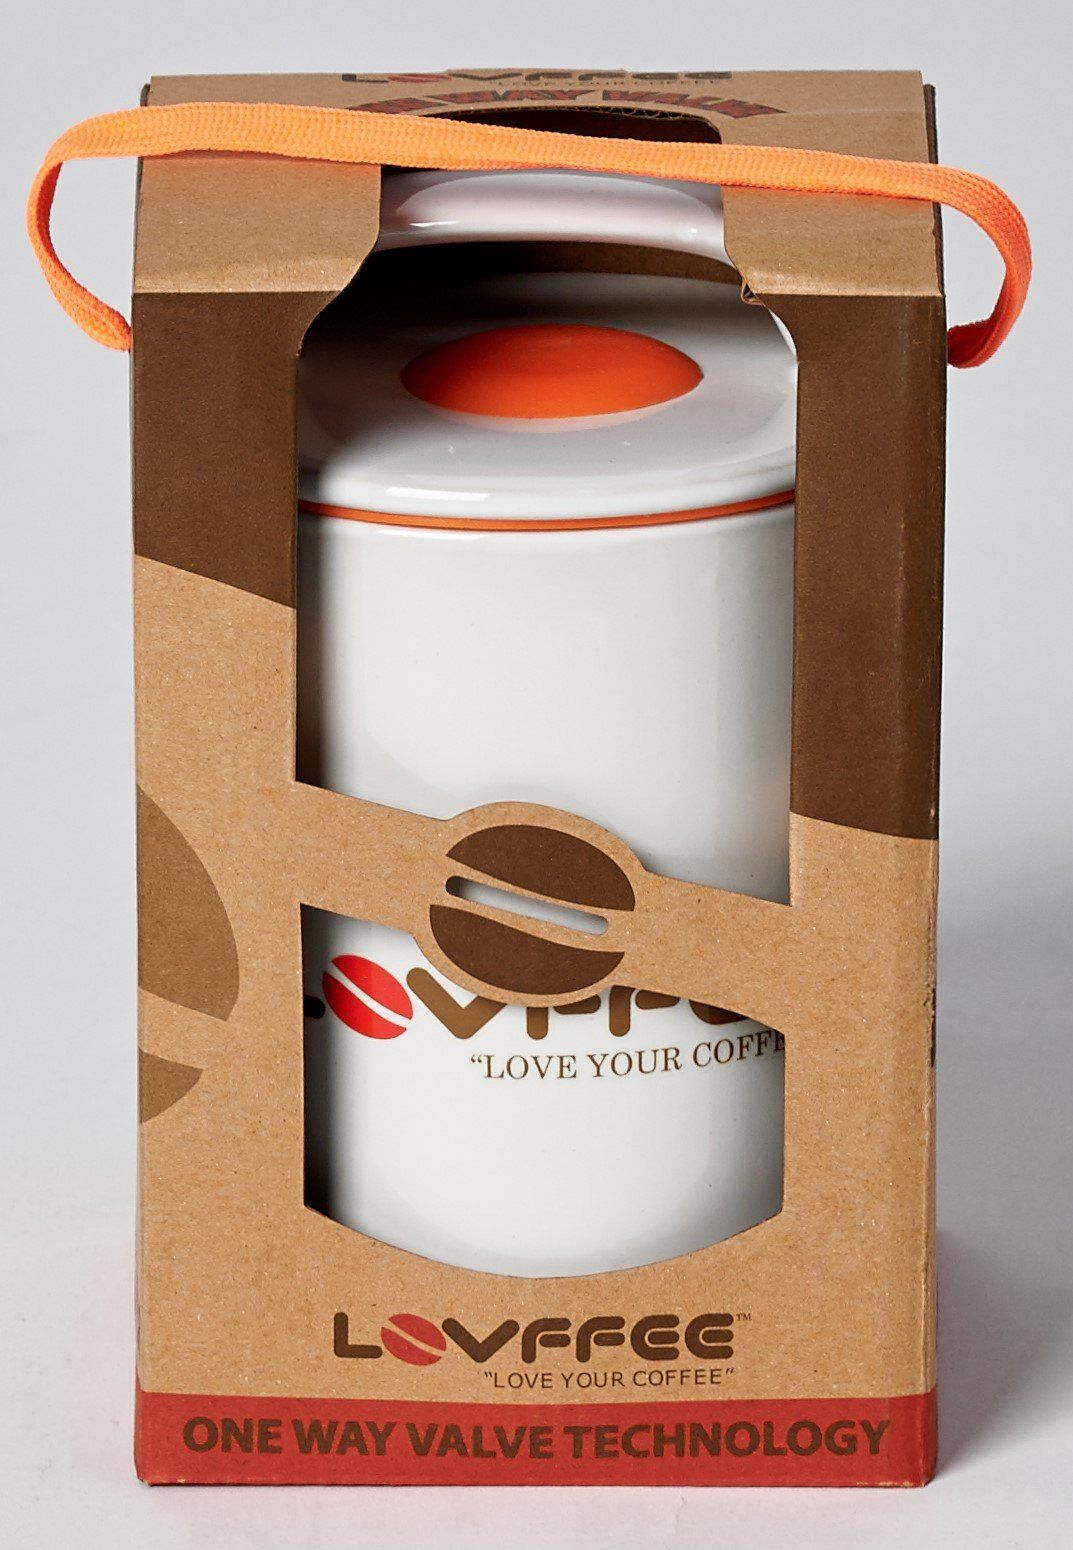 Lovffee White Ceramic Premium Coffee Canister With Scoop Holds 1 Pound Whole Beans Or Ground In Patented Air Vacuum Sealed